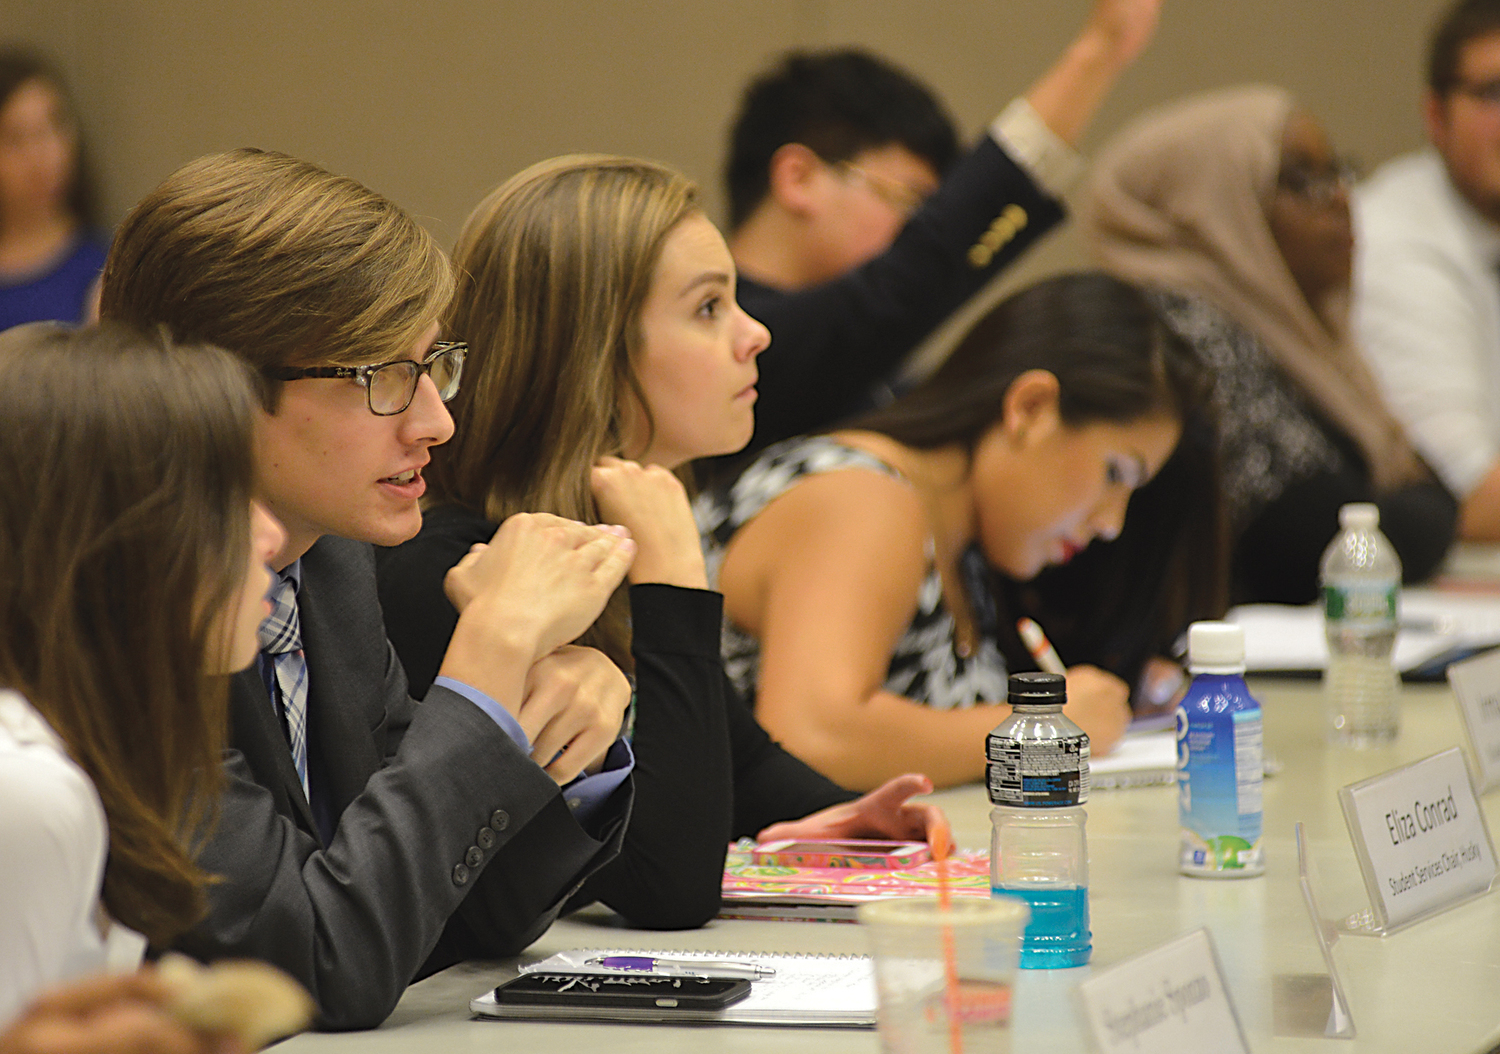 USG senator Daniel Byrd (middle) speaks with fellow senators during the Undergraduate Student Government's meeting in the Student Union on Wednesday, Sept. 16, 2015. (Jason Jiang/The Daily Campus)